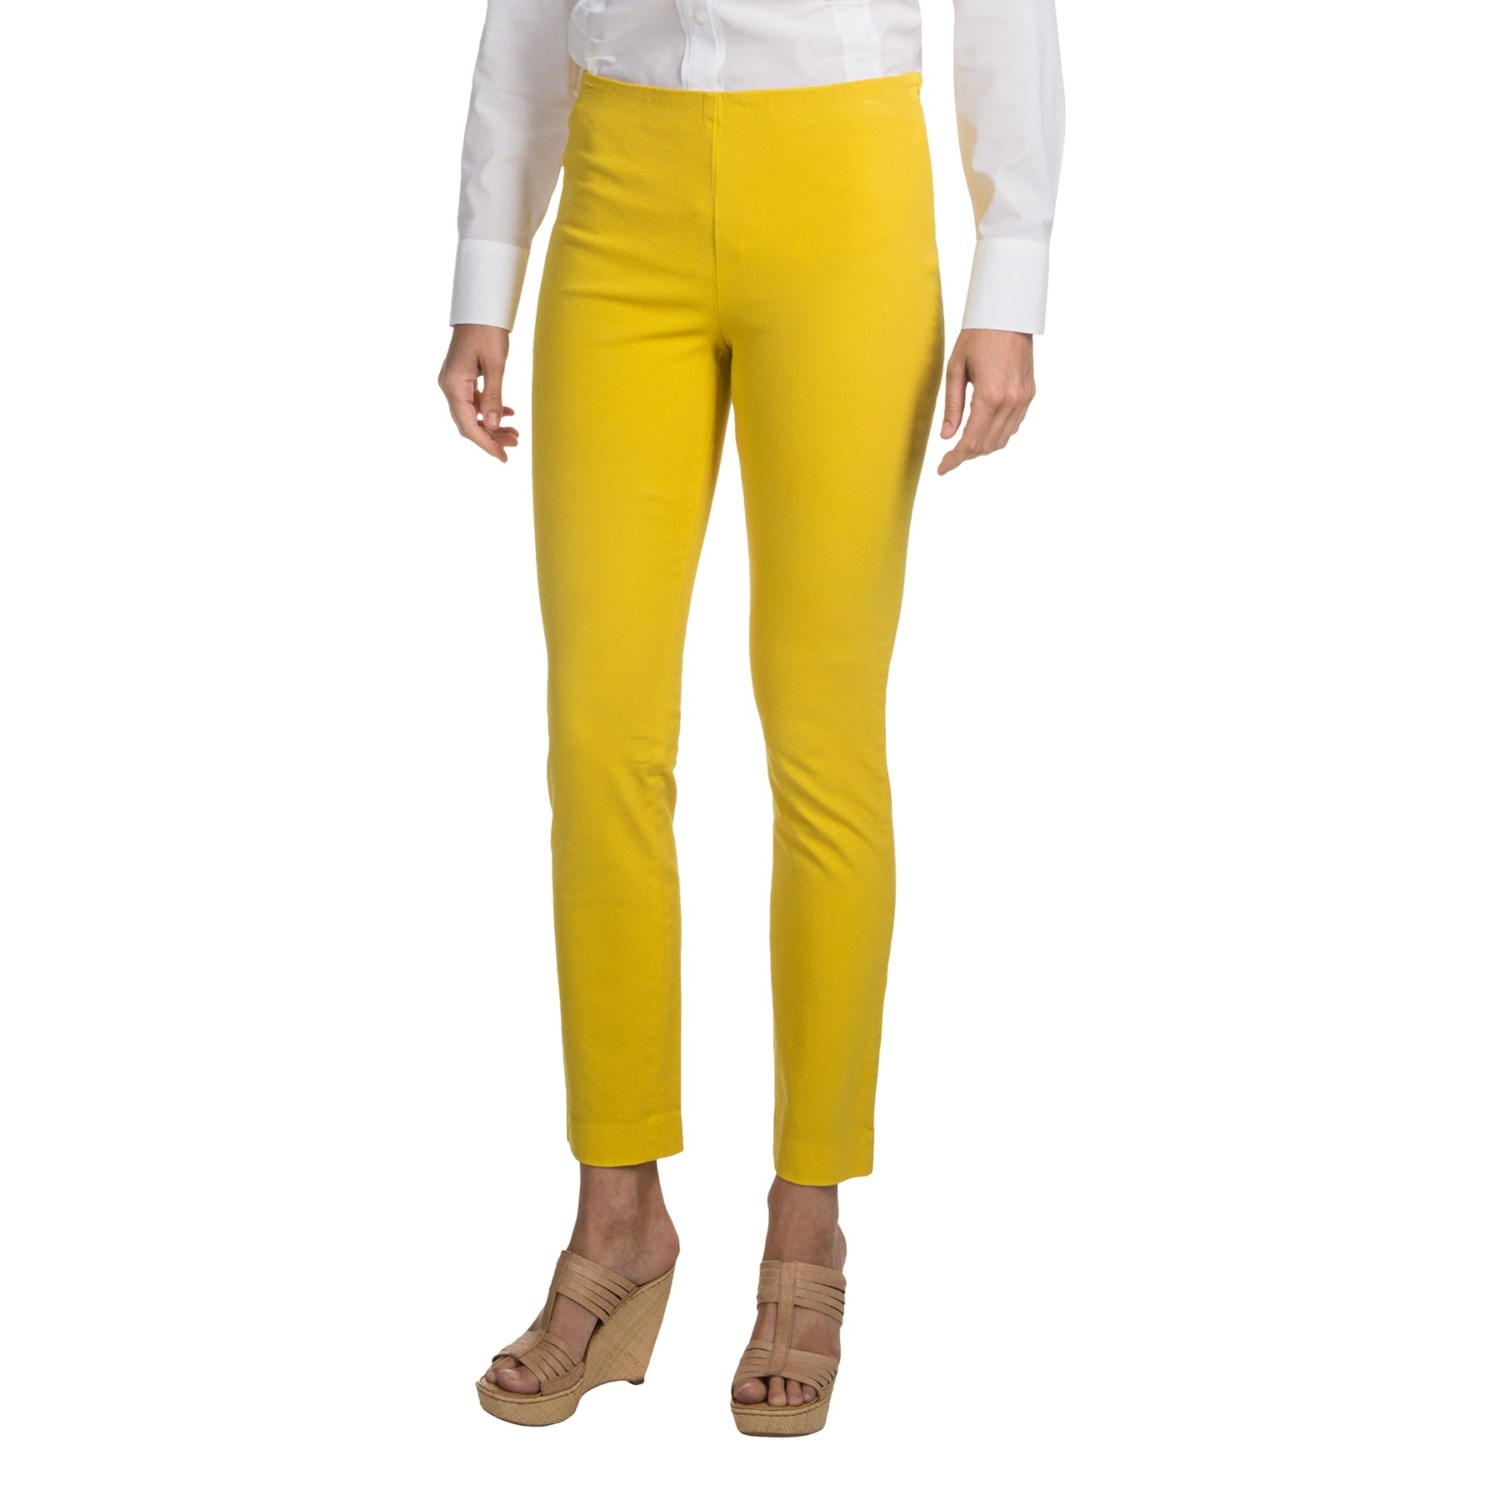 Shop for ankle pants women online at Target. Free shipping on purchases over $35 and save 5% every day with your Target REDcard.